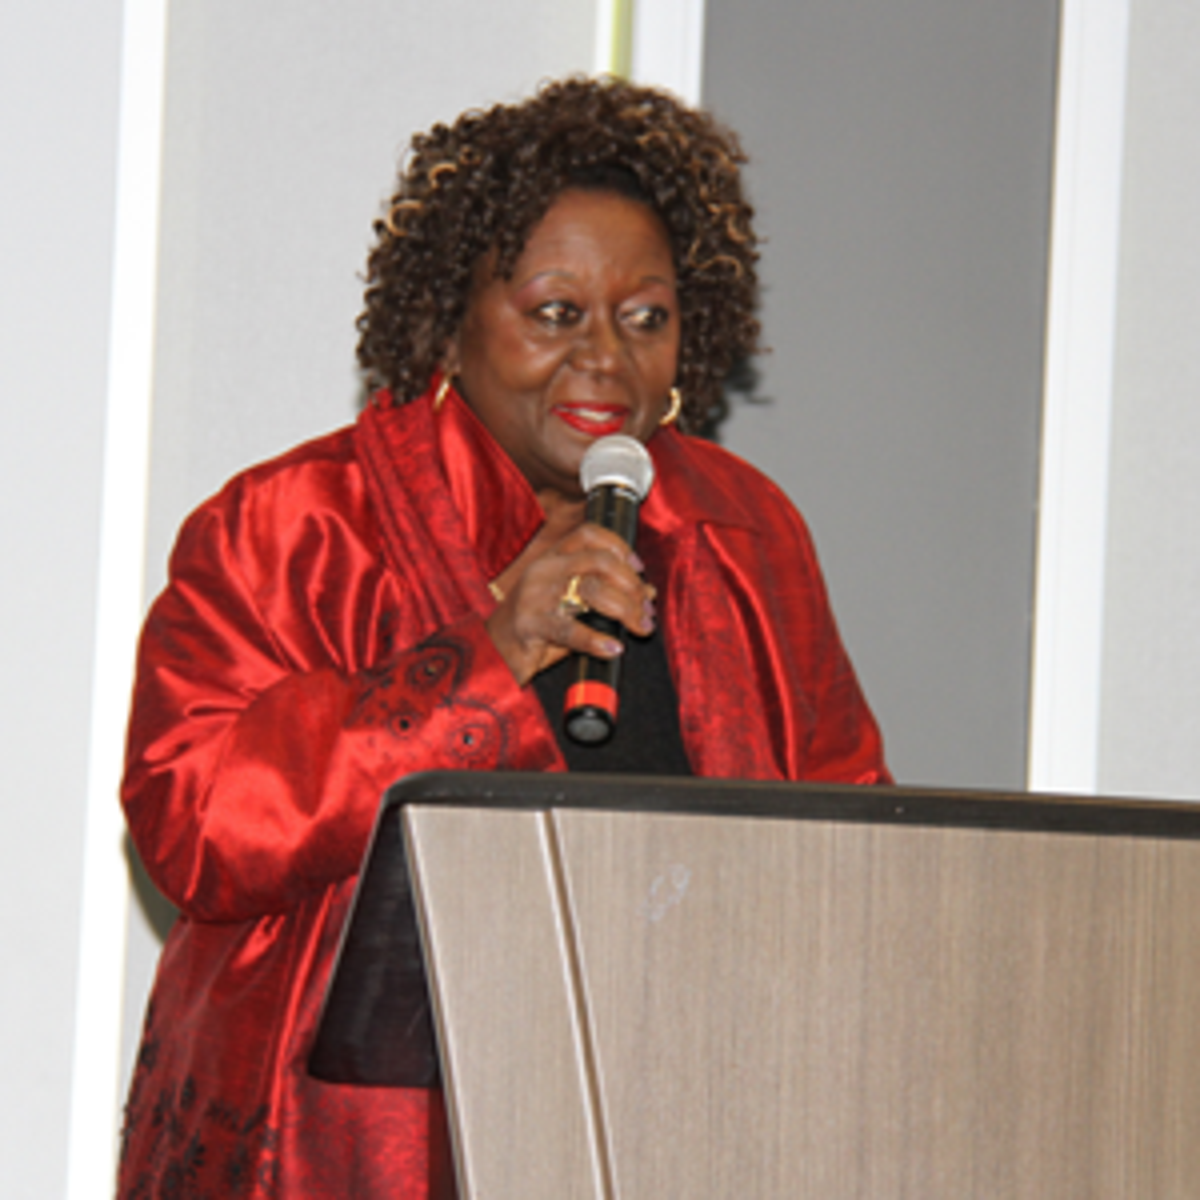 Hournable Jean Augustine